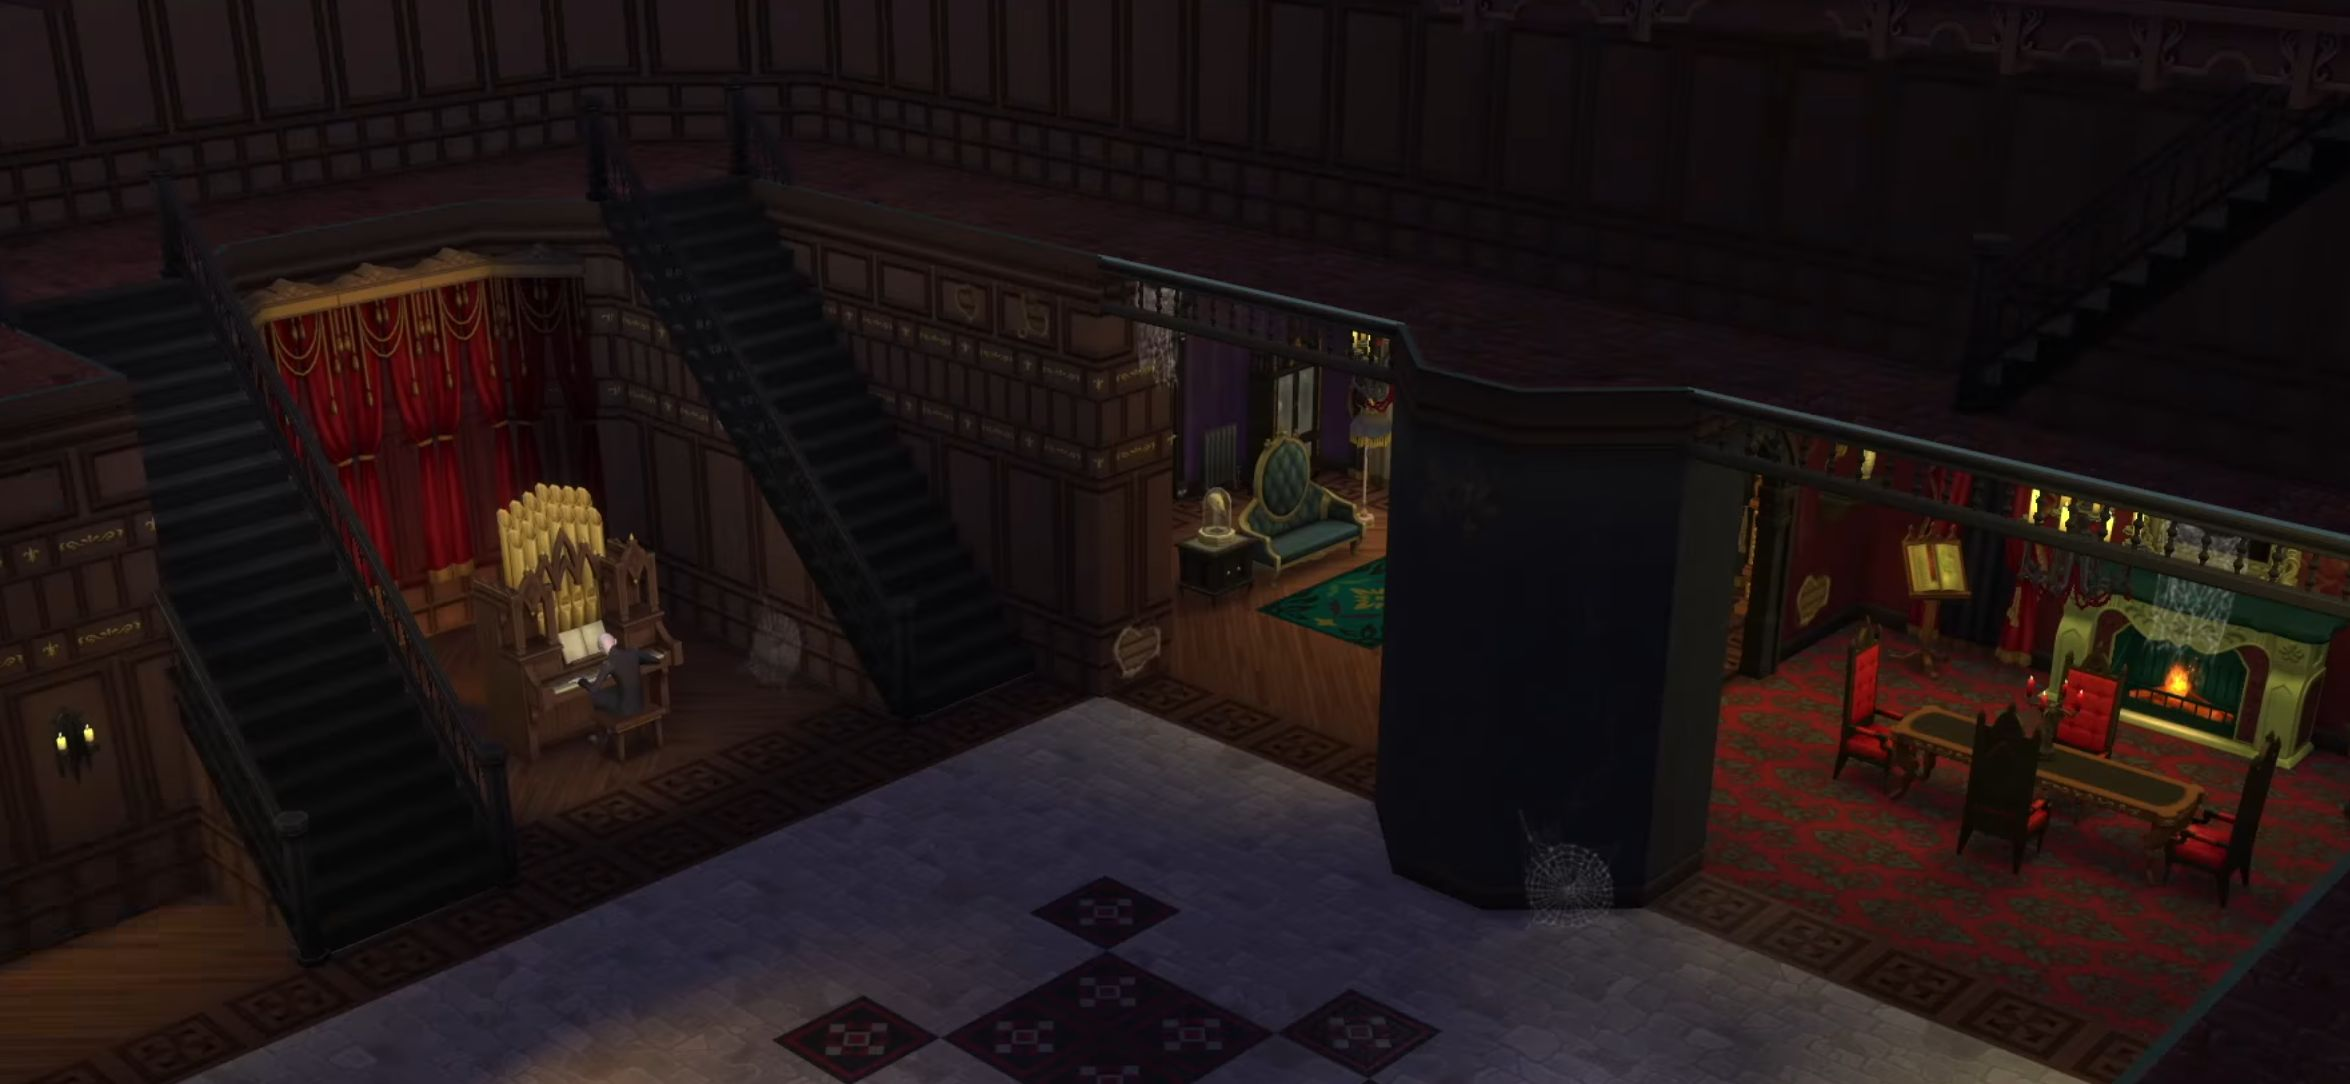 The Sims 4 Vampires Game Pack Guide - Make-your-room-look-like-a-vampires-room